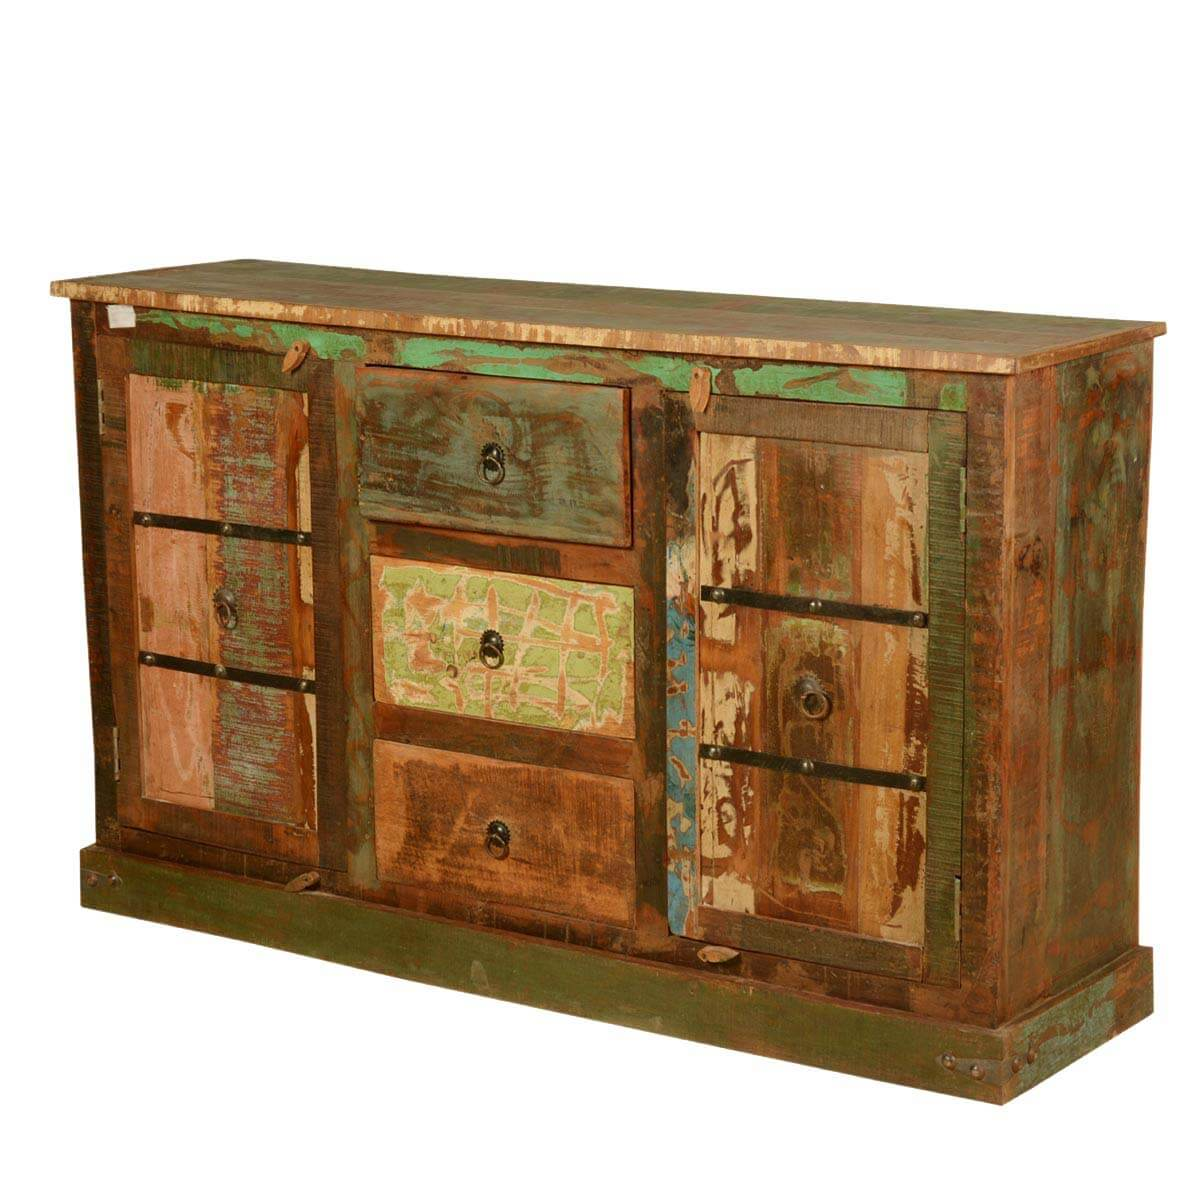 Autumn gothic reclaimed wood rustic sideboard buffet cabinet